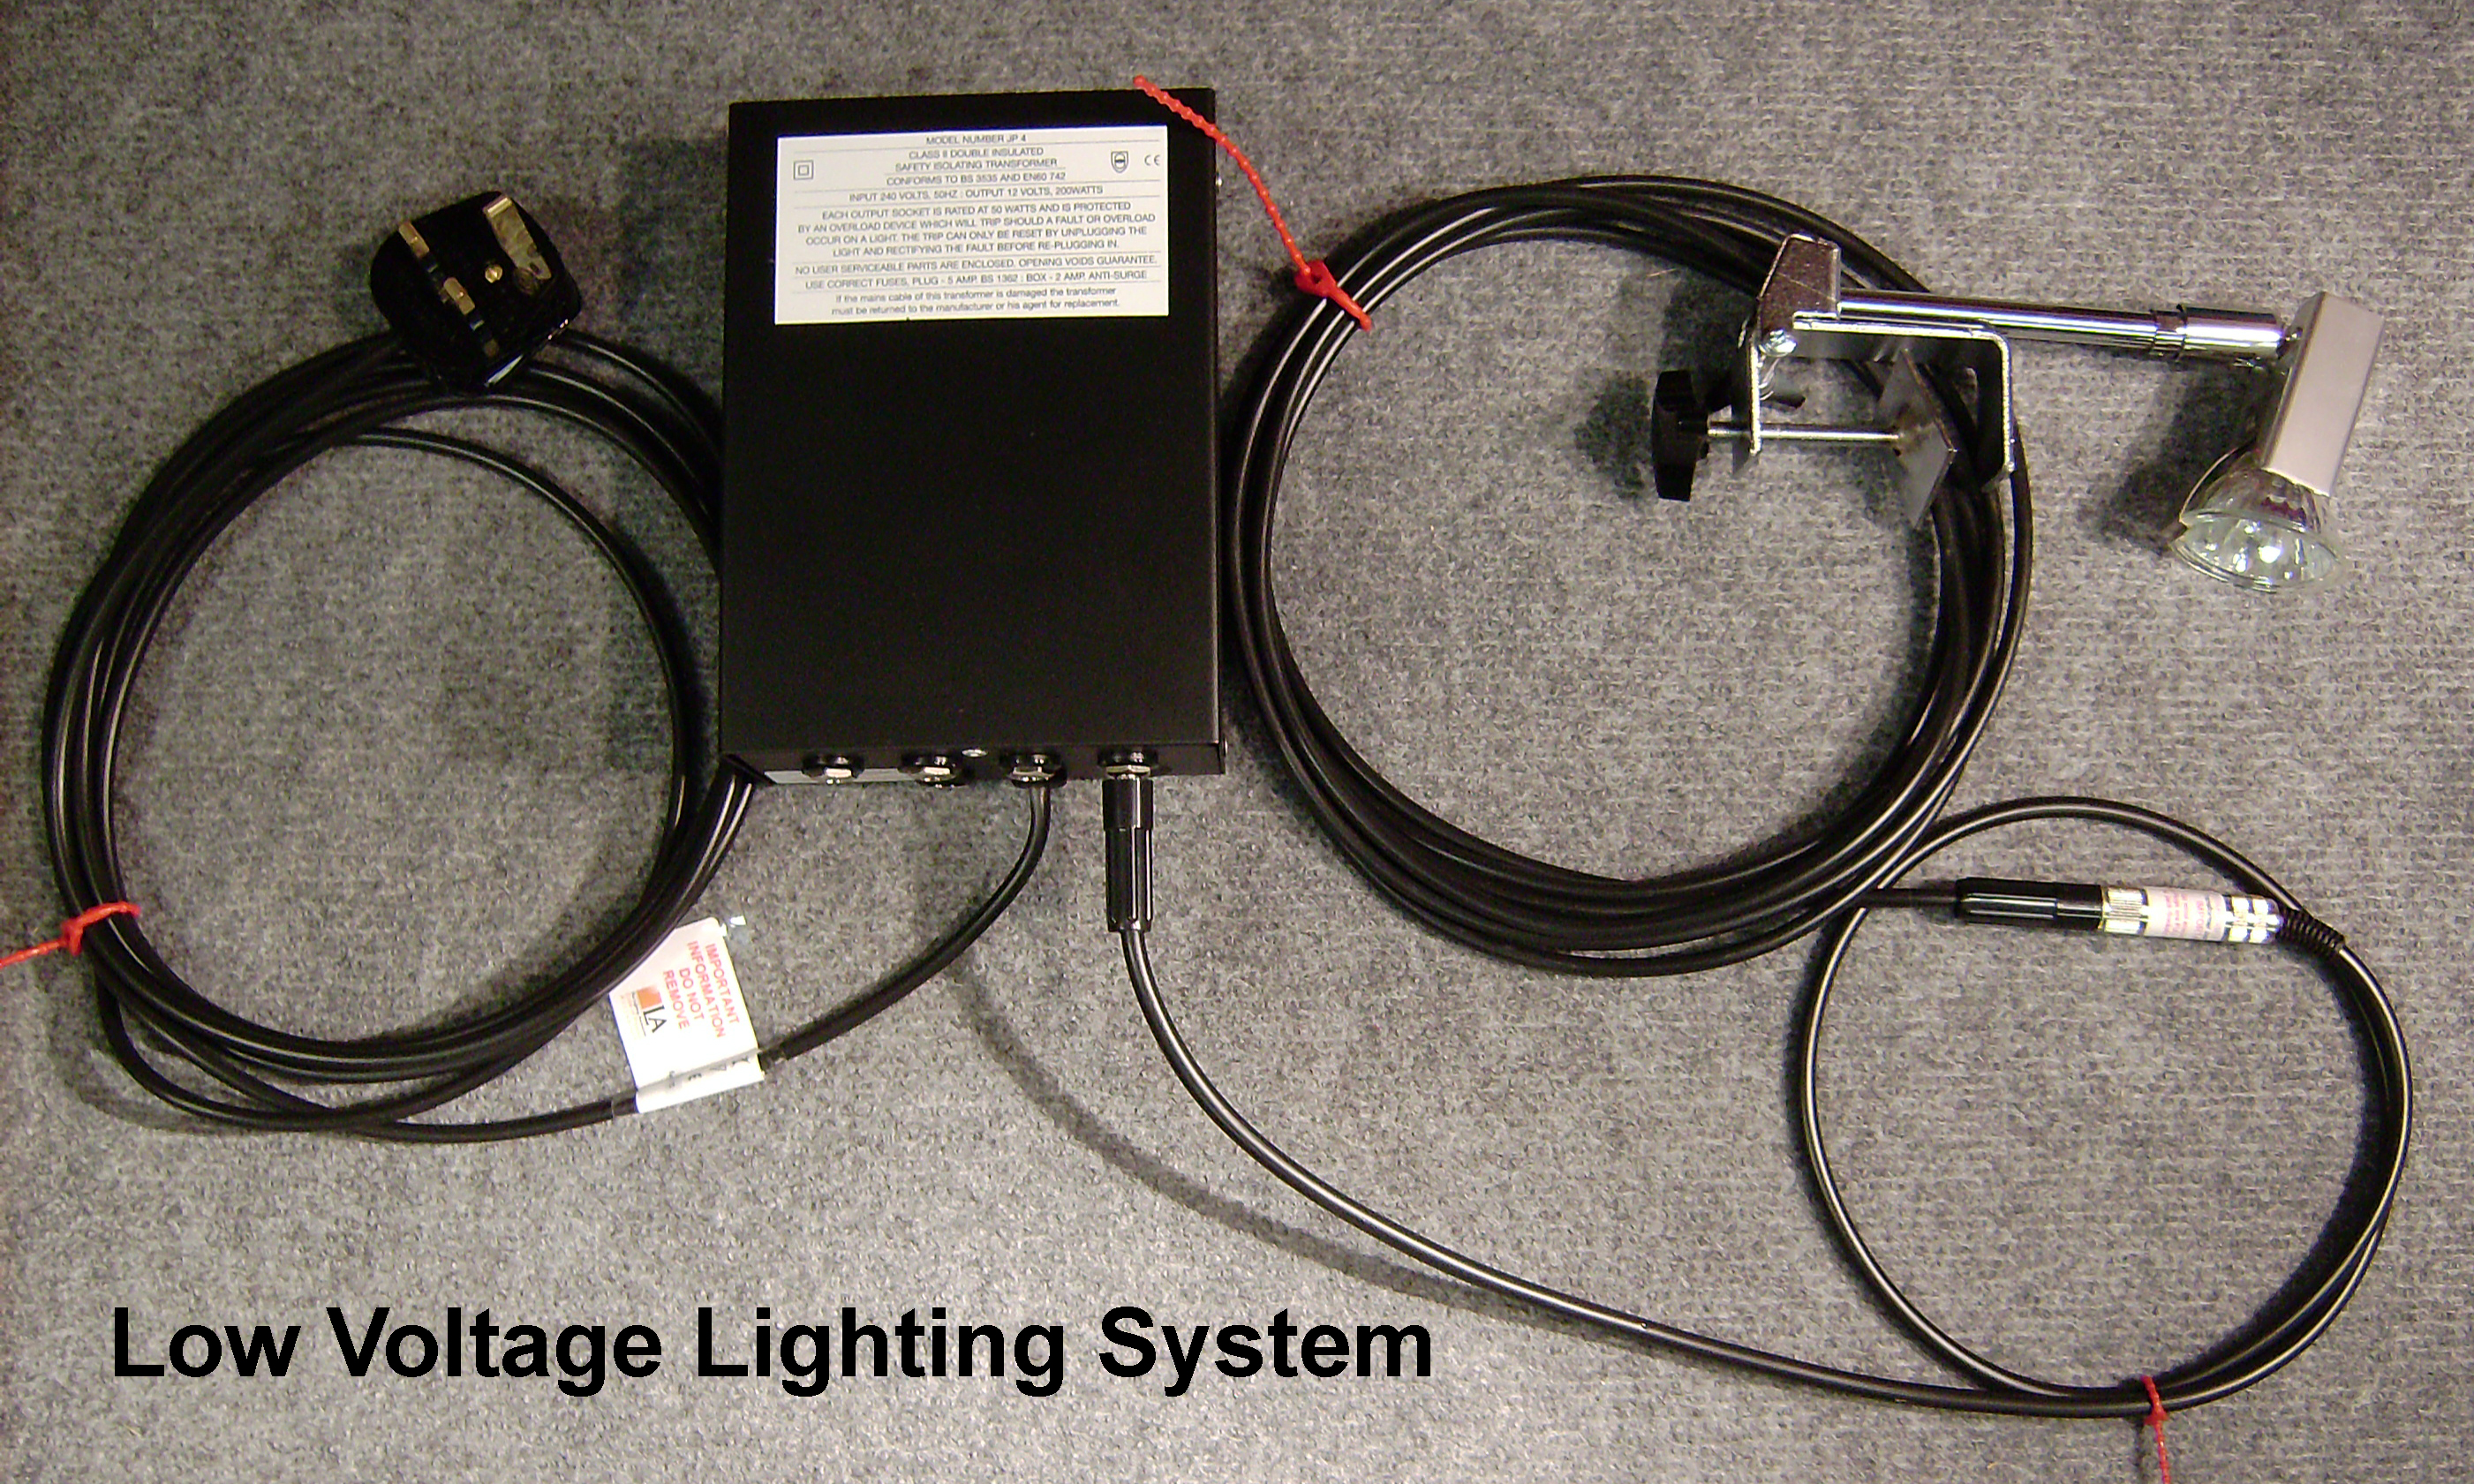 Low Voltage Lighting System